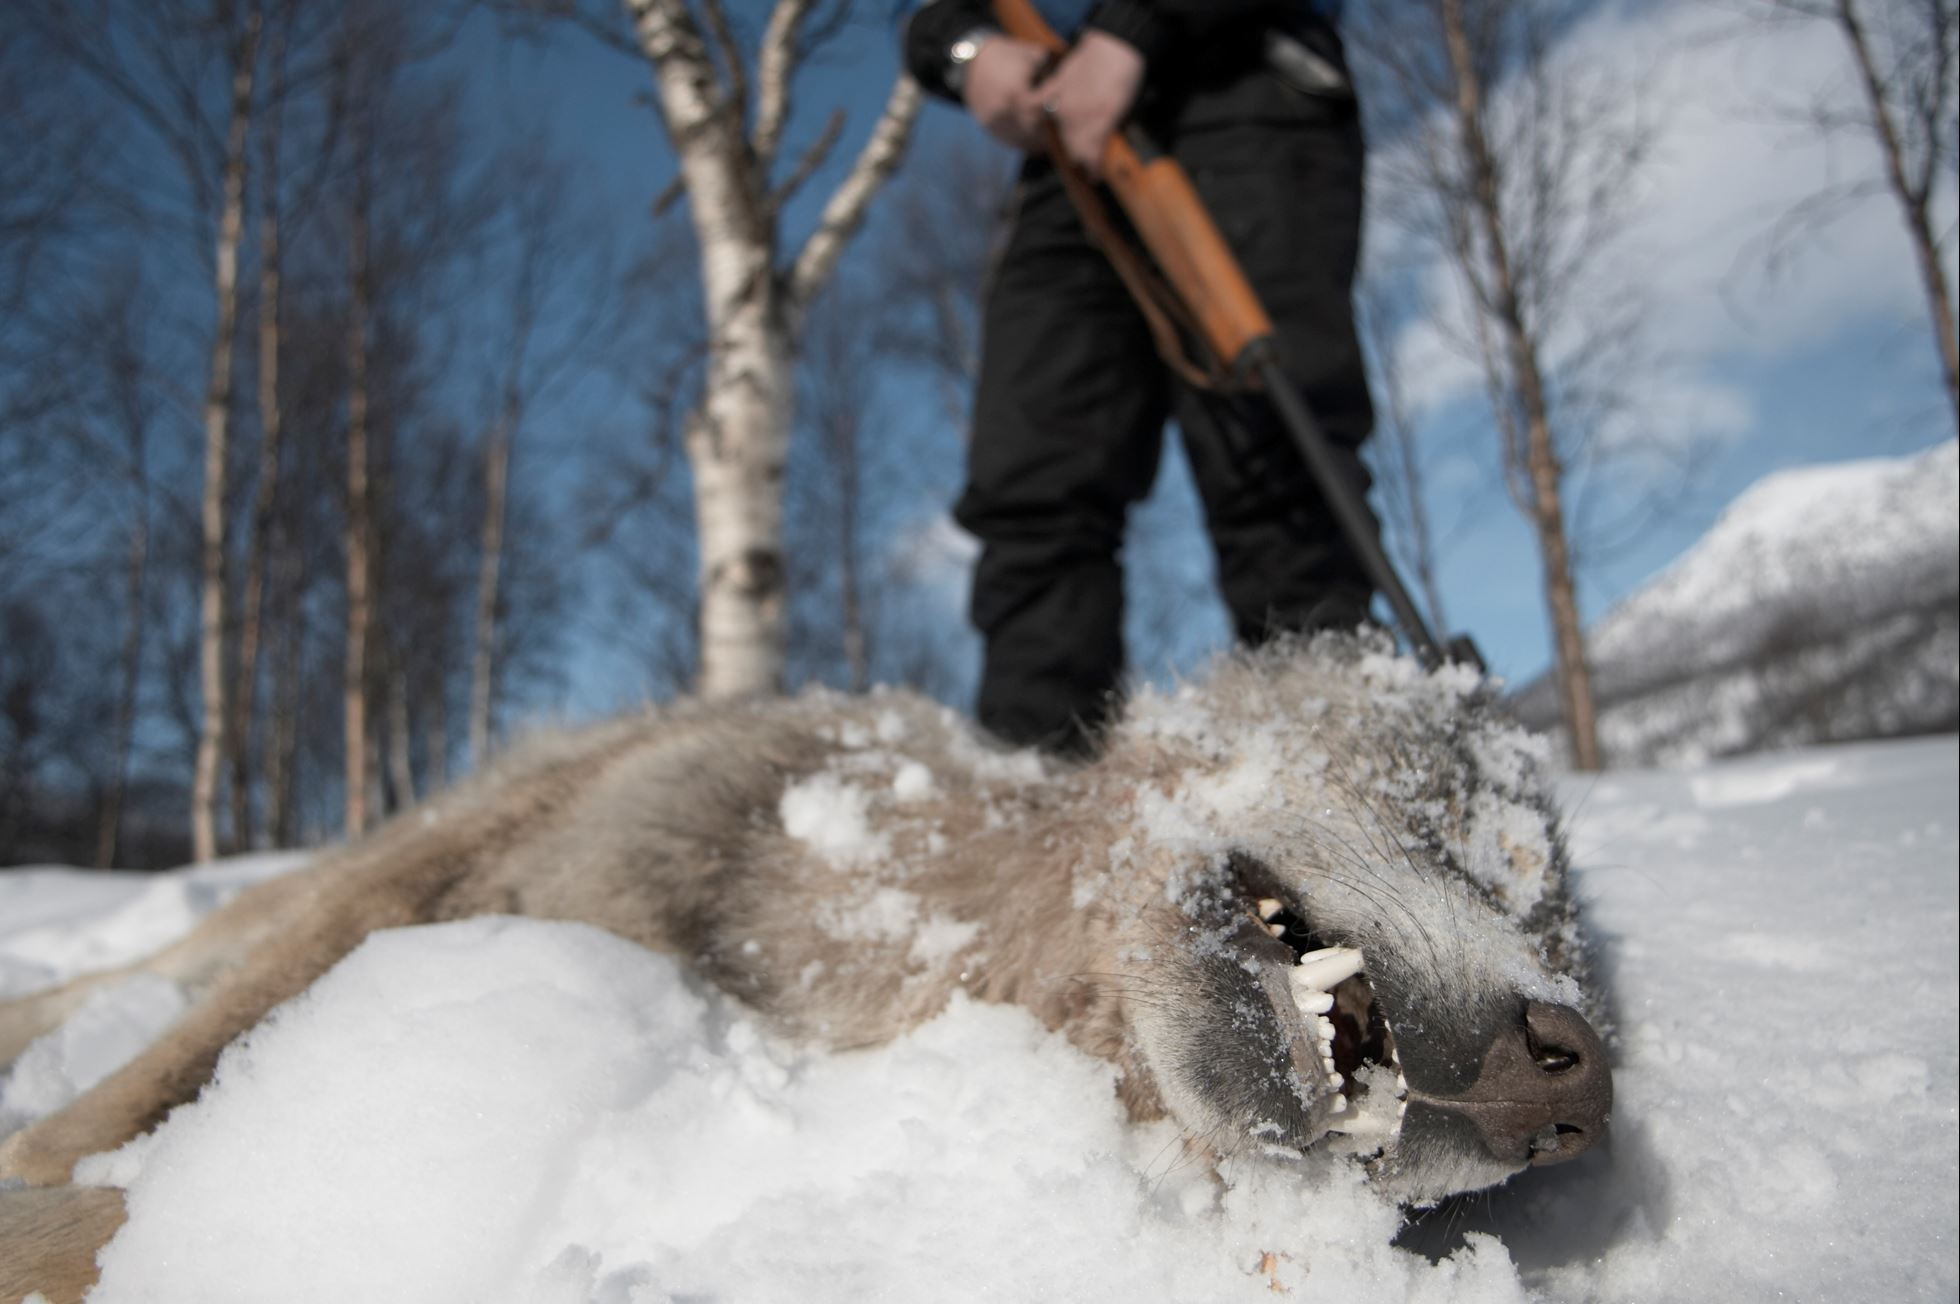 European wolf (Canis lupis) lies dead after Norwegian government sanctioned wolf cull, Hedmark, Norway